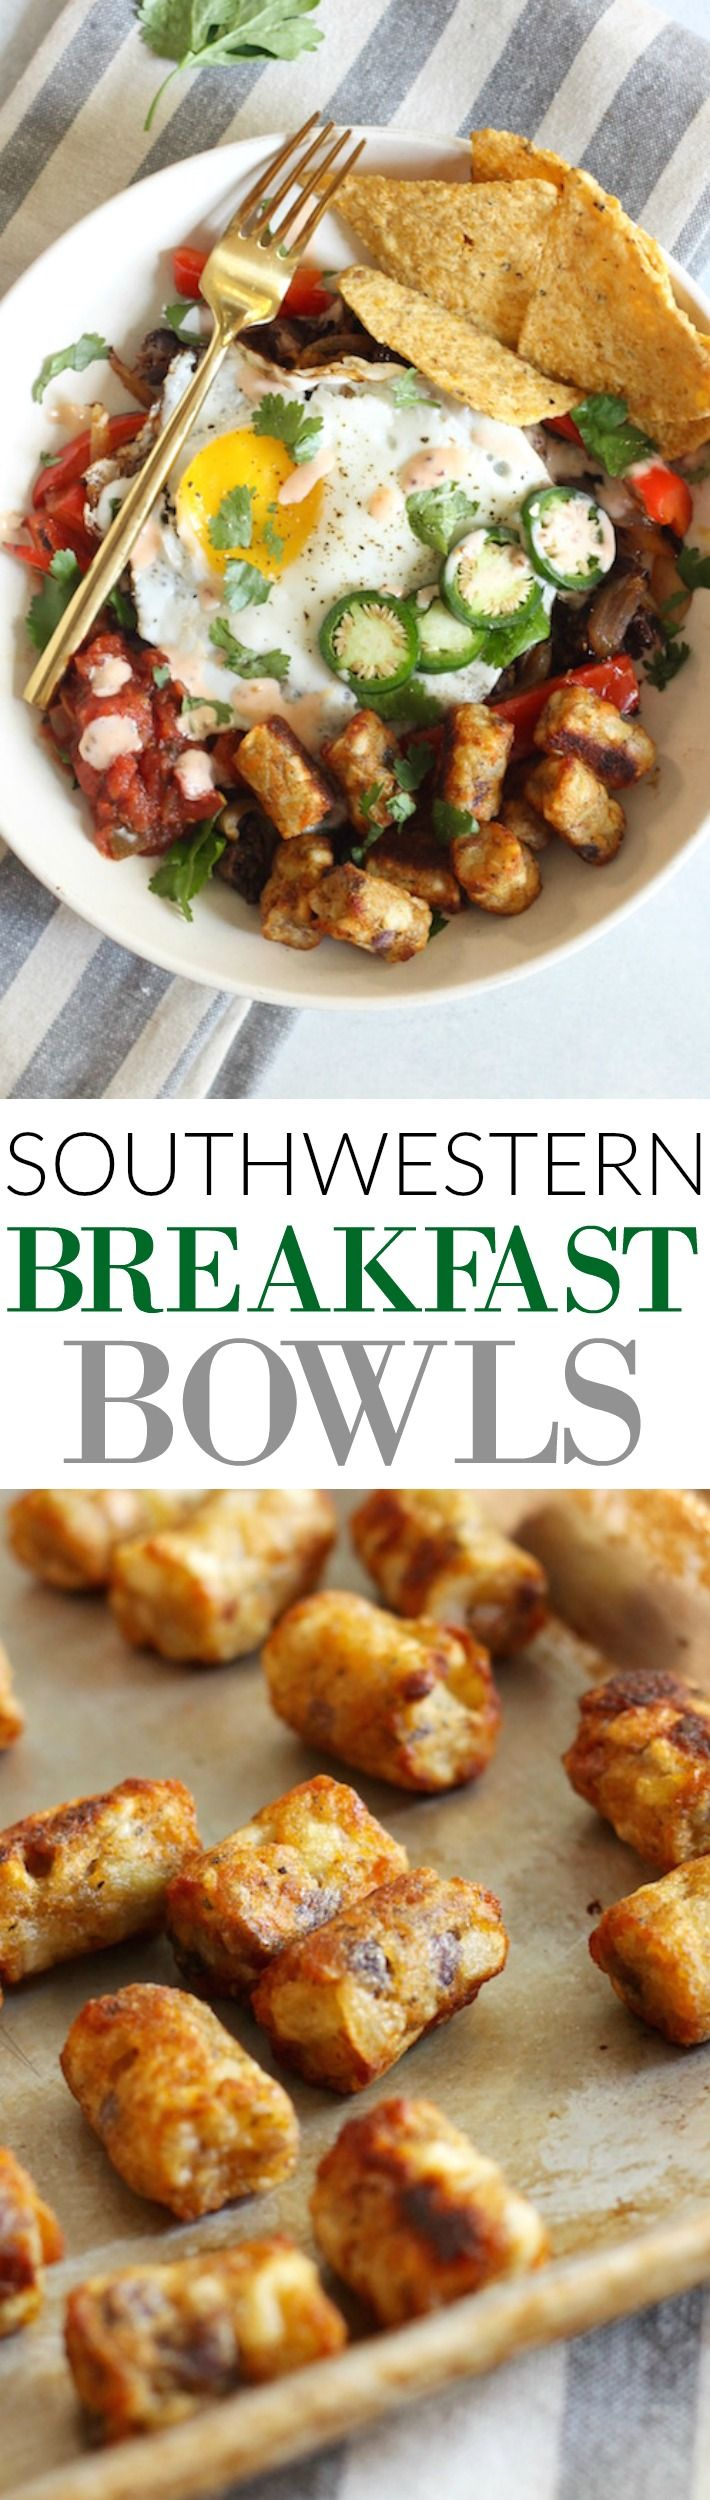 Loaded with eggs, beans, veggies, and potato puffs, these easy and tasty Southwestern Breakfast Bowls make the perfect healthy weekend breakfast! Gluten-free.